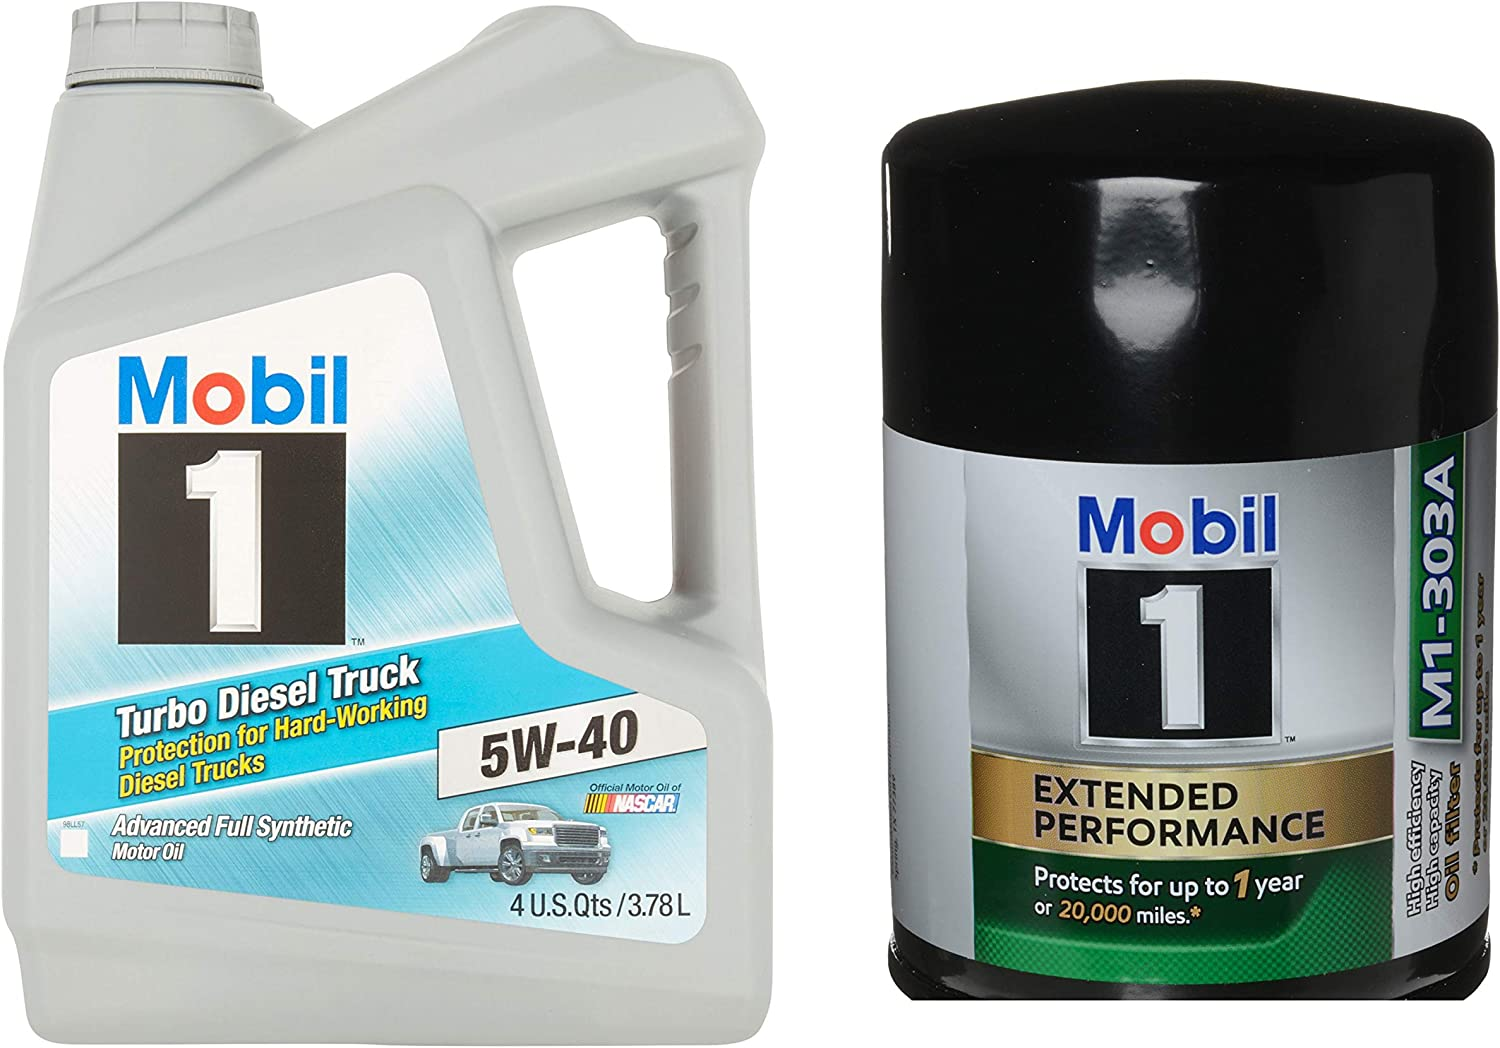 Mobil 1 M1-303A Extended Performance Oil Filter